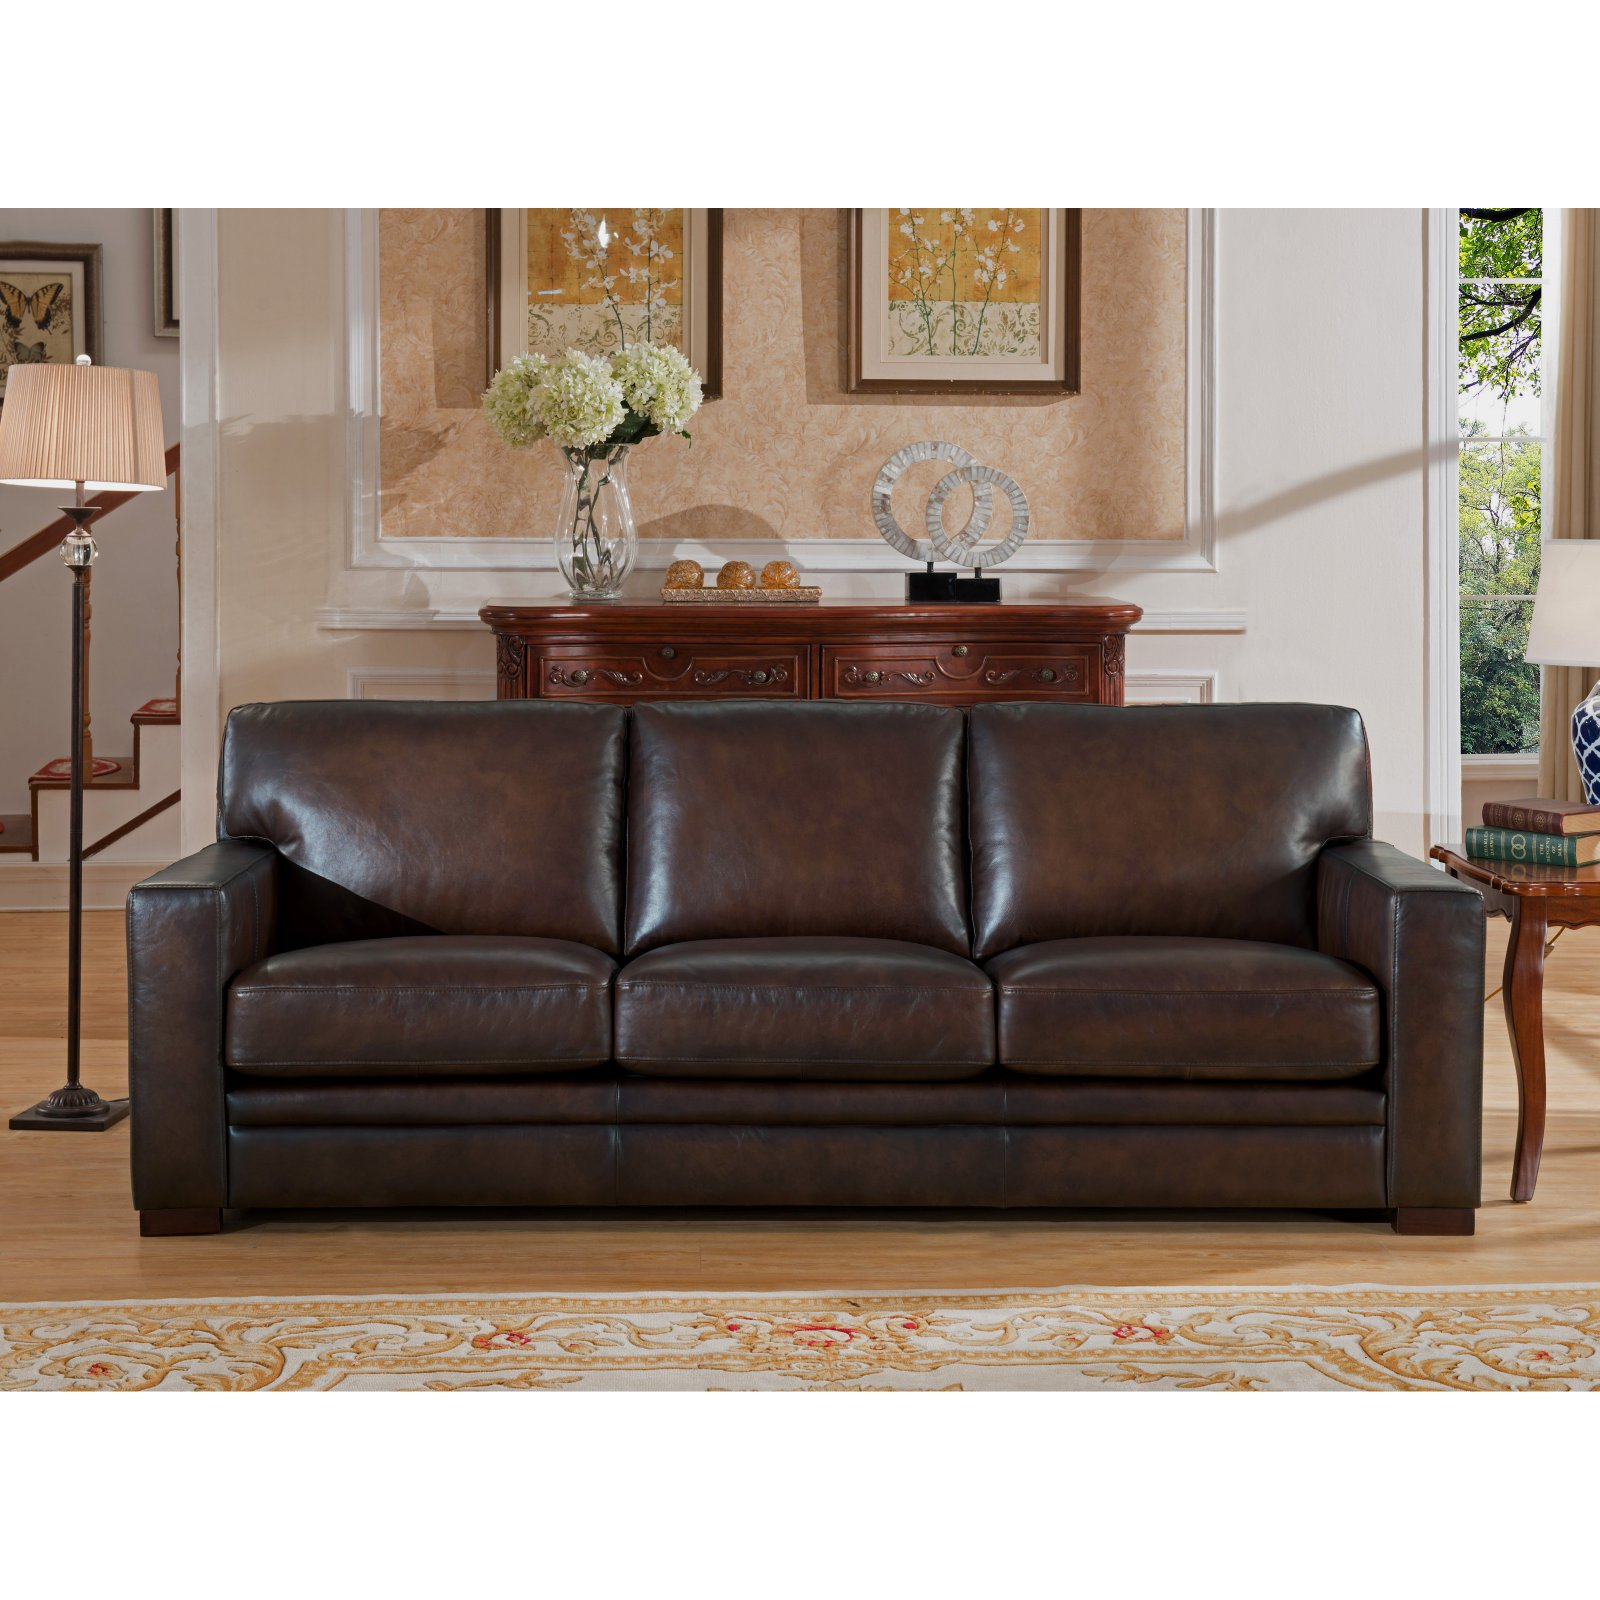 Sofa On Online Amax Leather Chatsworth Top Grain Leather Sofa Products In 2019